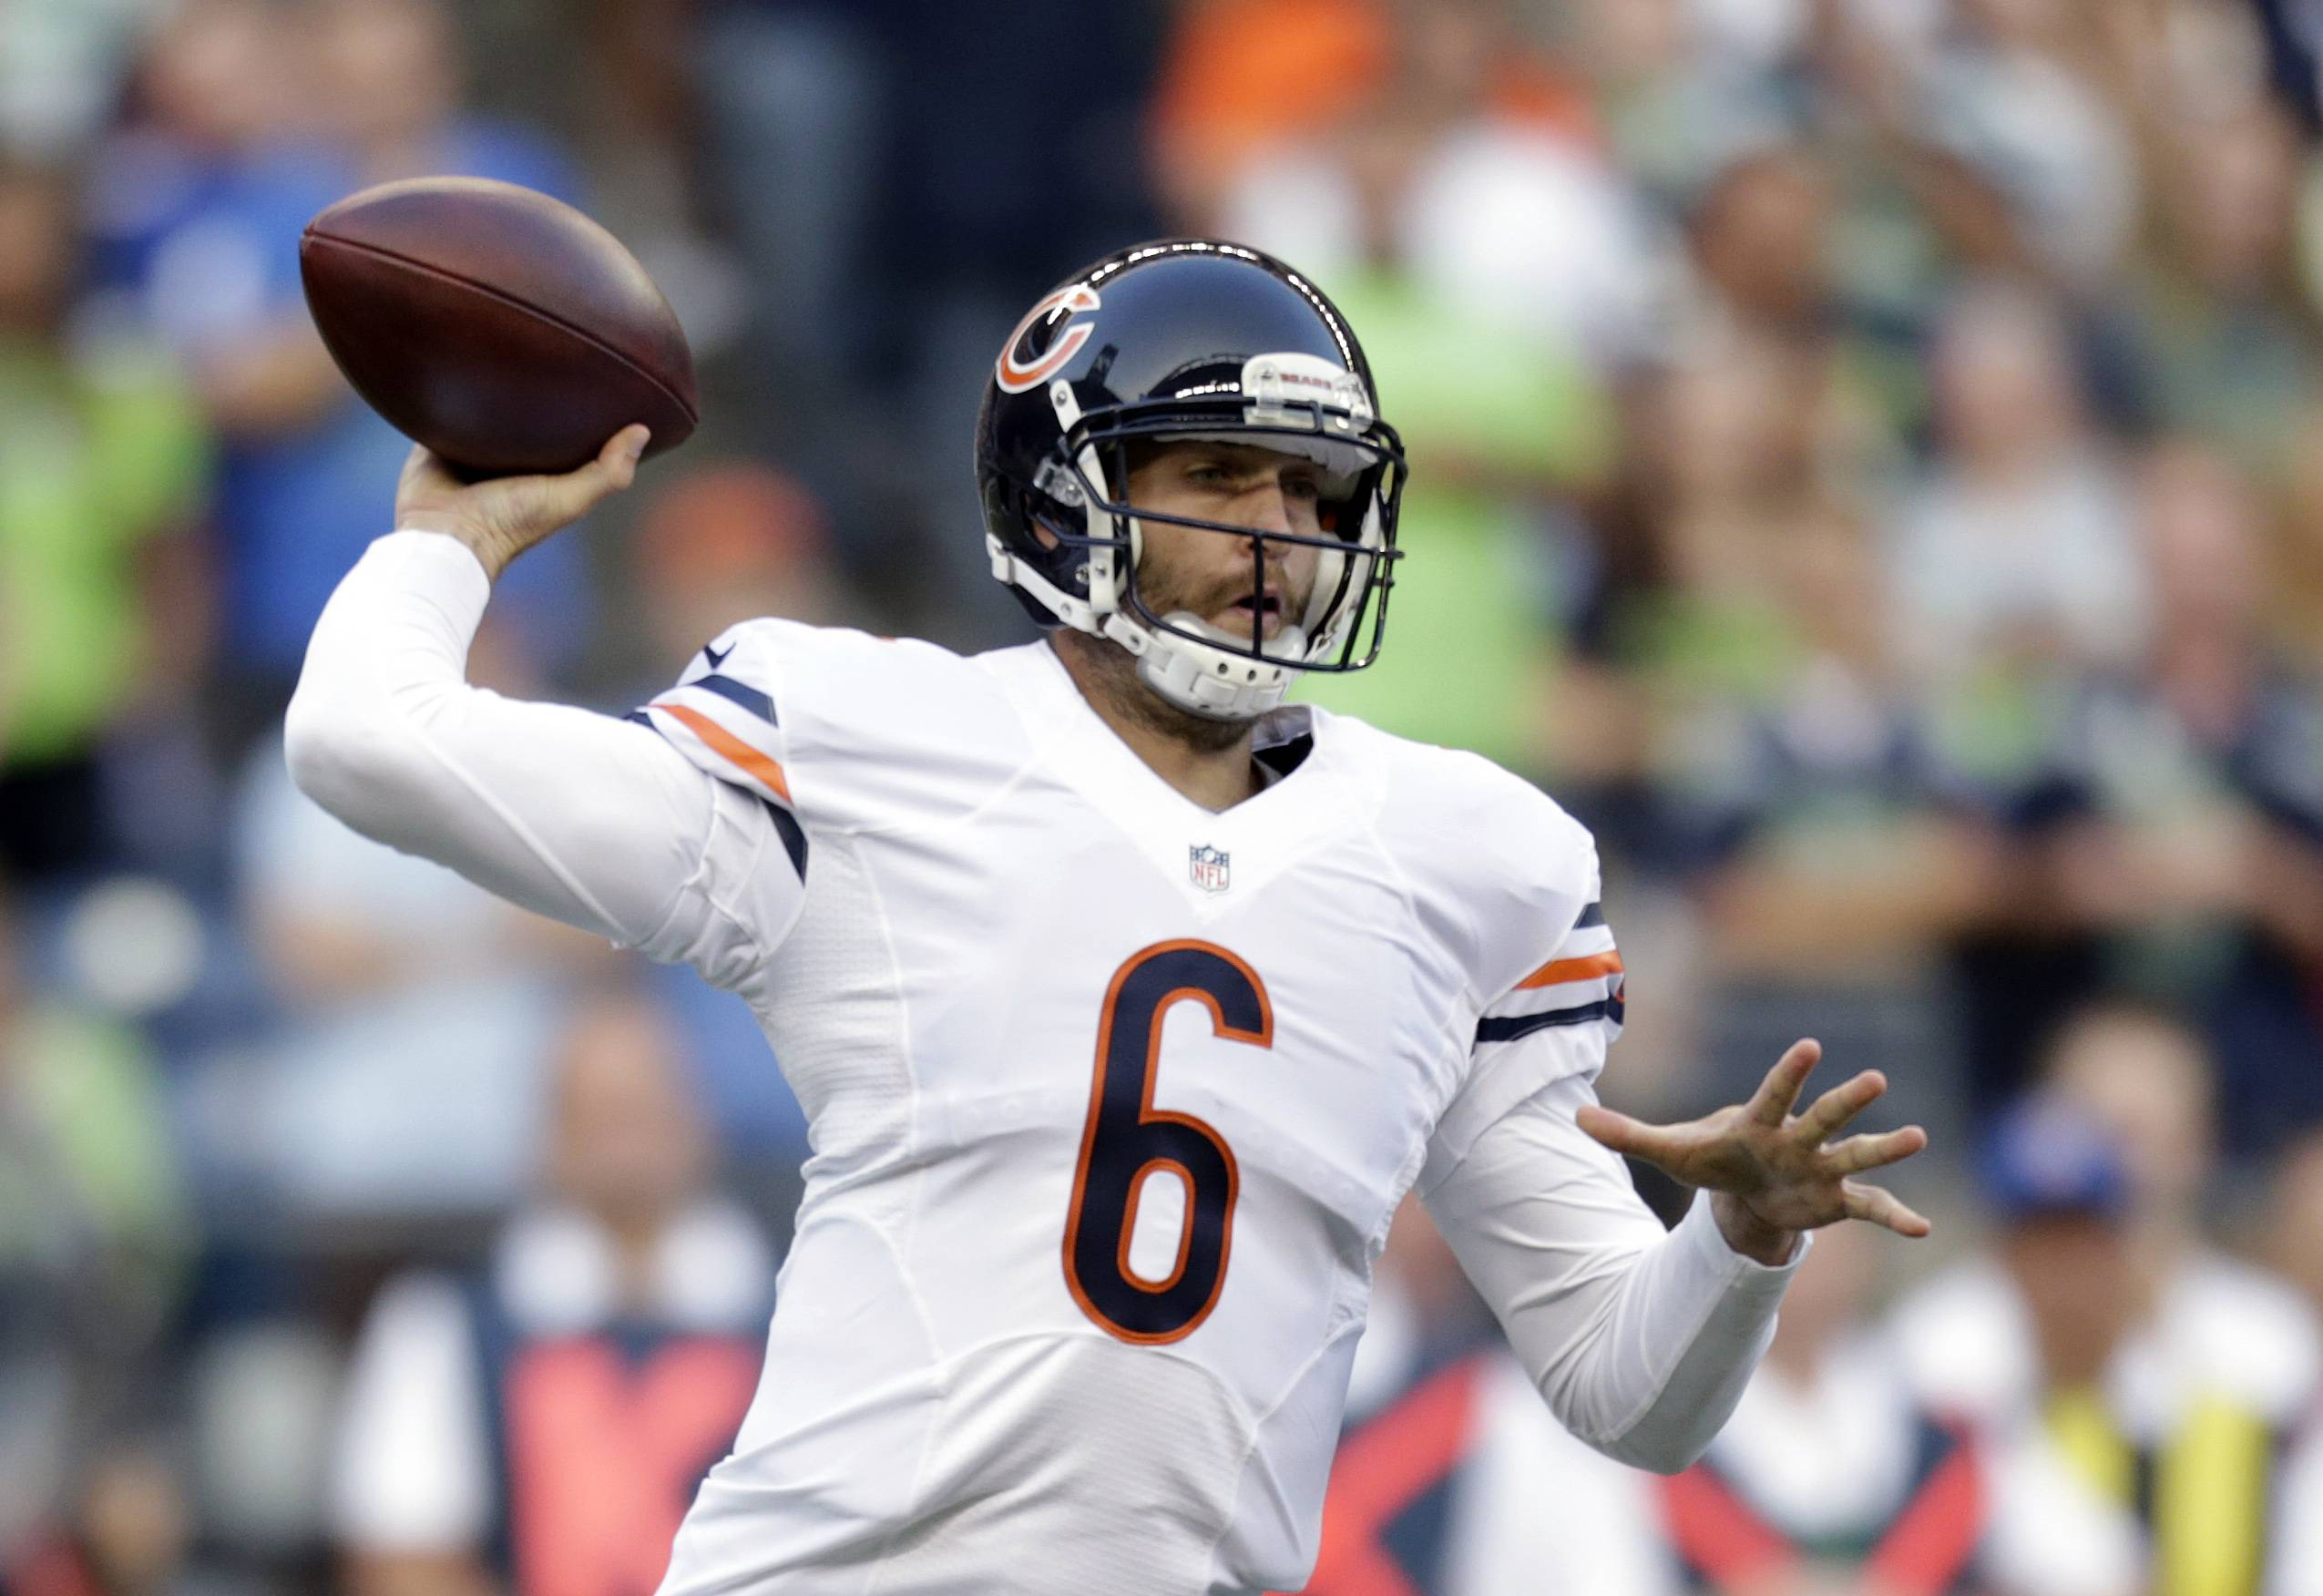 As The Scorecard sees things, quarterback Jay Cutler and the Bears look like a playoff team.